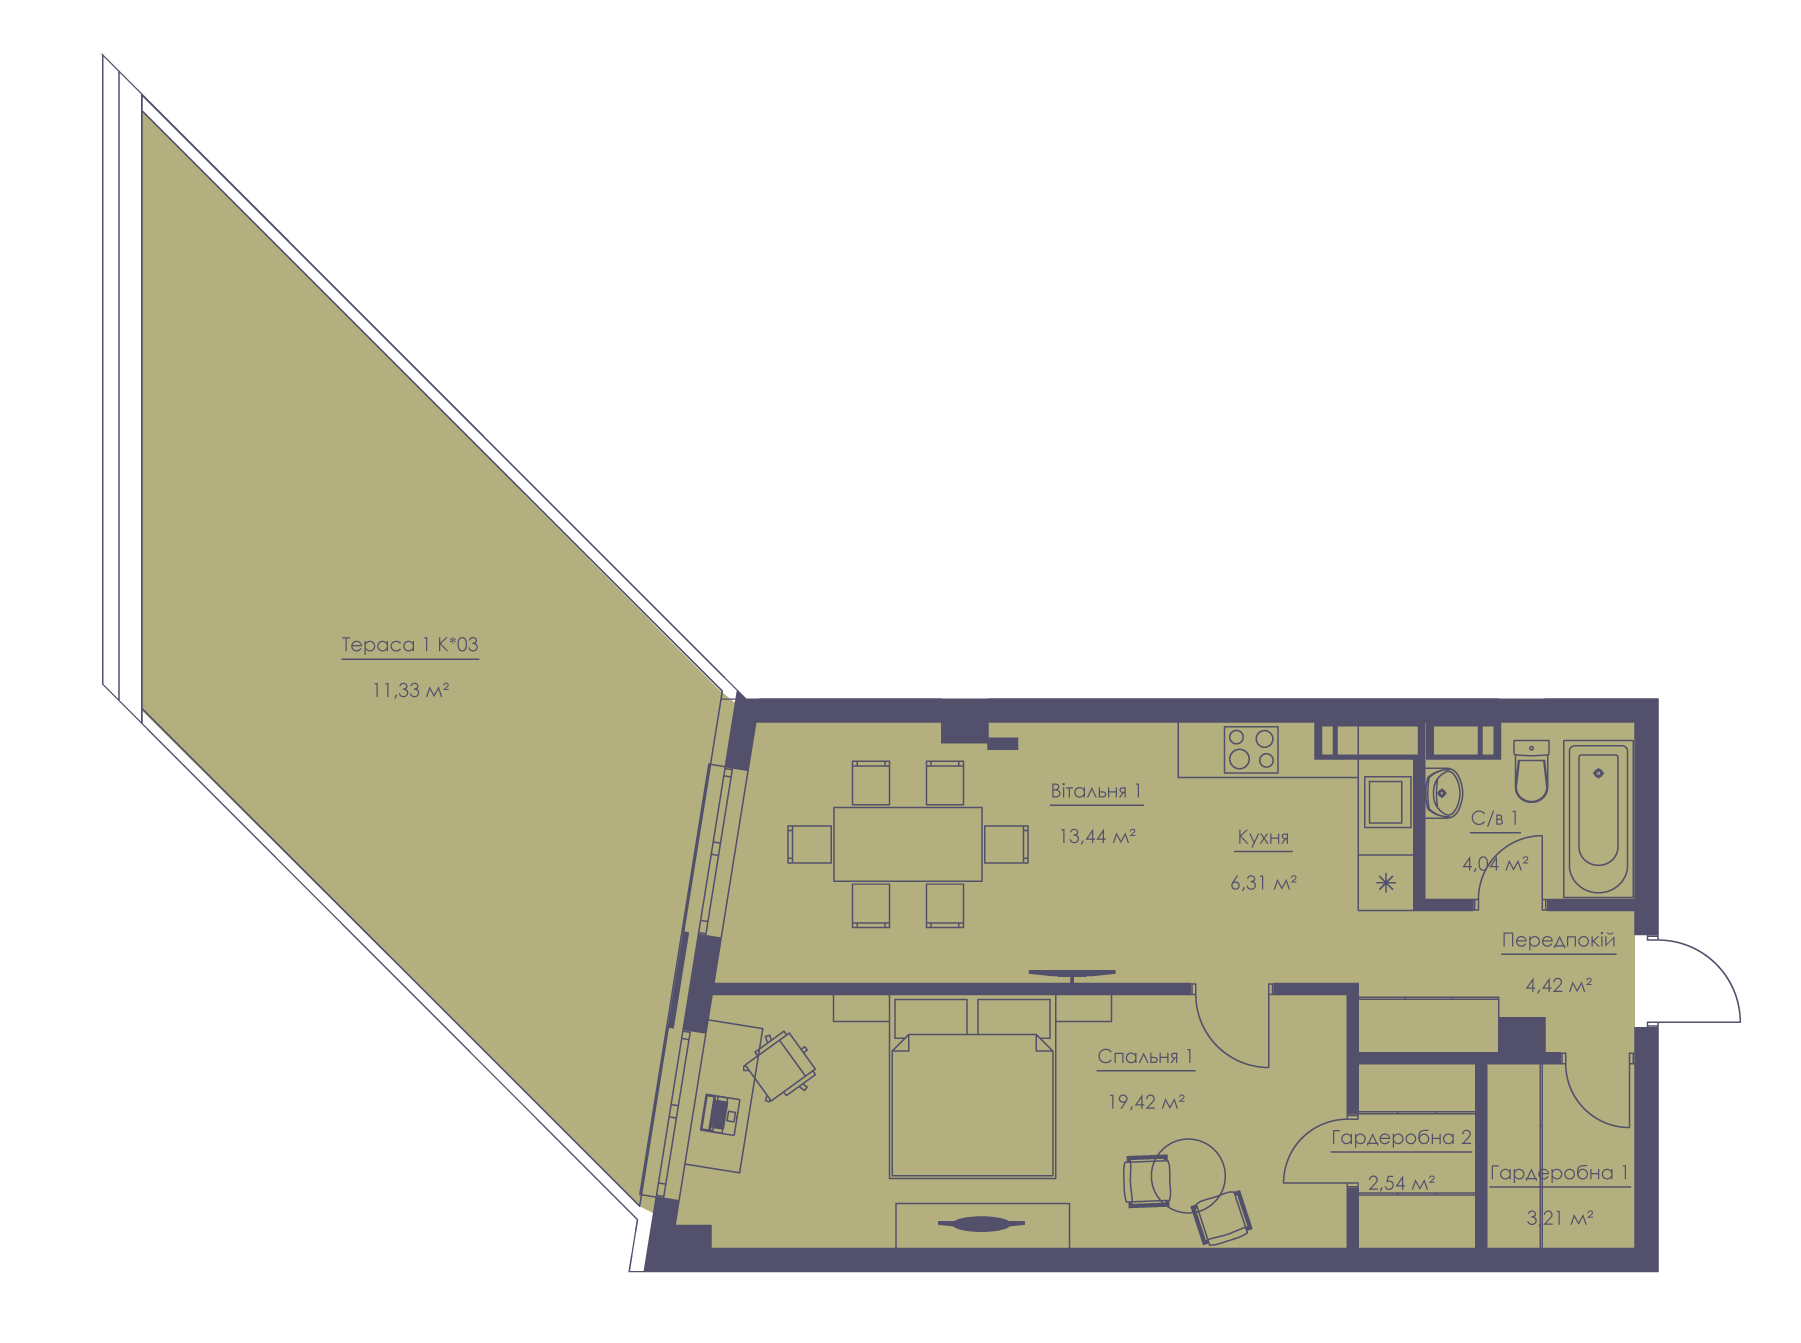 Apartment layout KV_29_2.2v_1_1_5-1